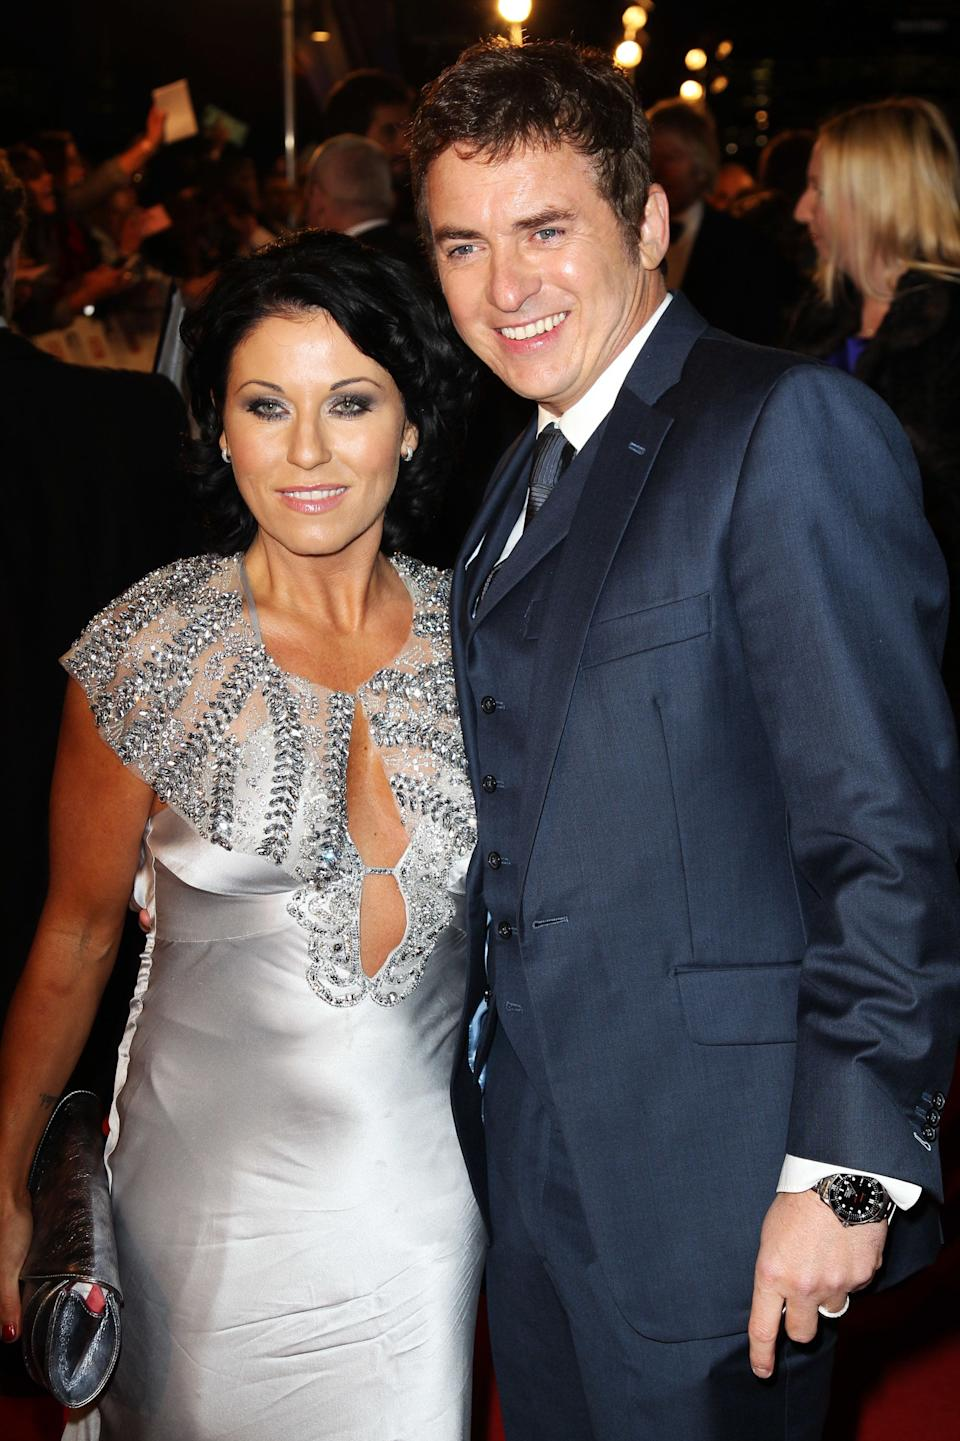 """'EastEnders' star Shane is known for being thick as thieves with his co-star both on and off screen, though he's since admitted this wasn't always the case.<br /><br />During a court testimony in the phone hacking scandal trials, he admitted that the two would often leave other voice messages about what was going on in their professional and personal lives, but they eventually wound up falling out due to mistrust, when they were both the victims of hacks.<br /><br />He said in 2015: """"That impacts a lot on shows like 'EastEnders' where you are working so close. You end up just not talking to each other because you end up not trusting each other.""""<br /><br />After a while, me and Jessie didn't speak for five years because she didn't trust me and I didn't trust her because we both thought we were selling each other down the river with stories, which it turned out of course wasn't true.""""<br /><br />Thankfully, now they know the truth, they're once again great friends, and are gearing up to play Kat and Alfie Moon in an 'EastEnders' spin-off in 2017."""